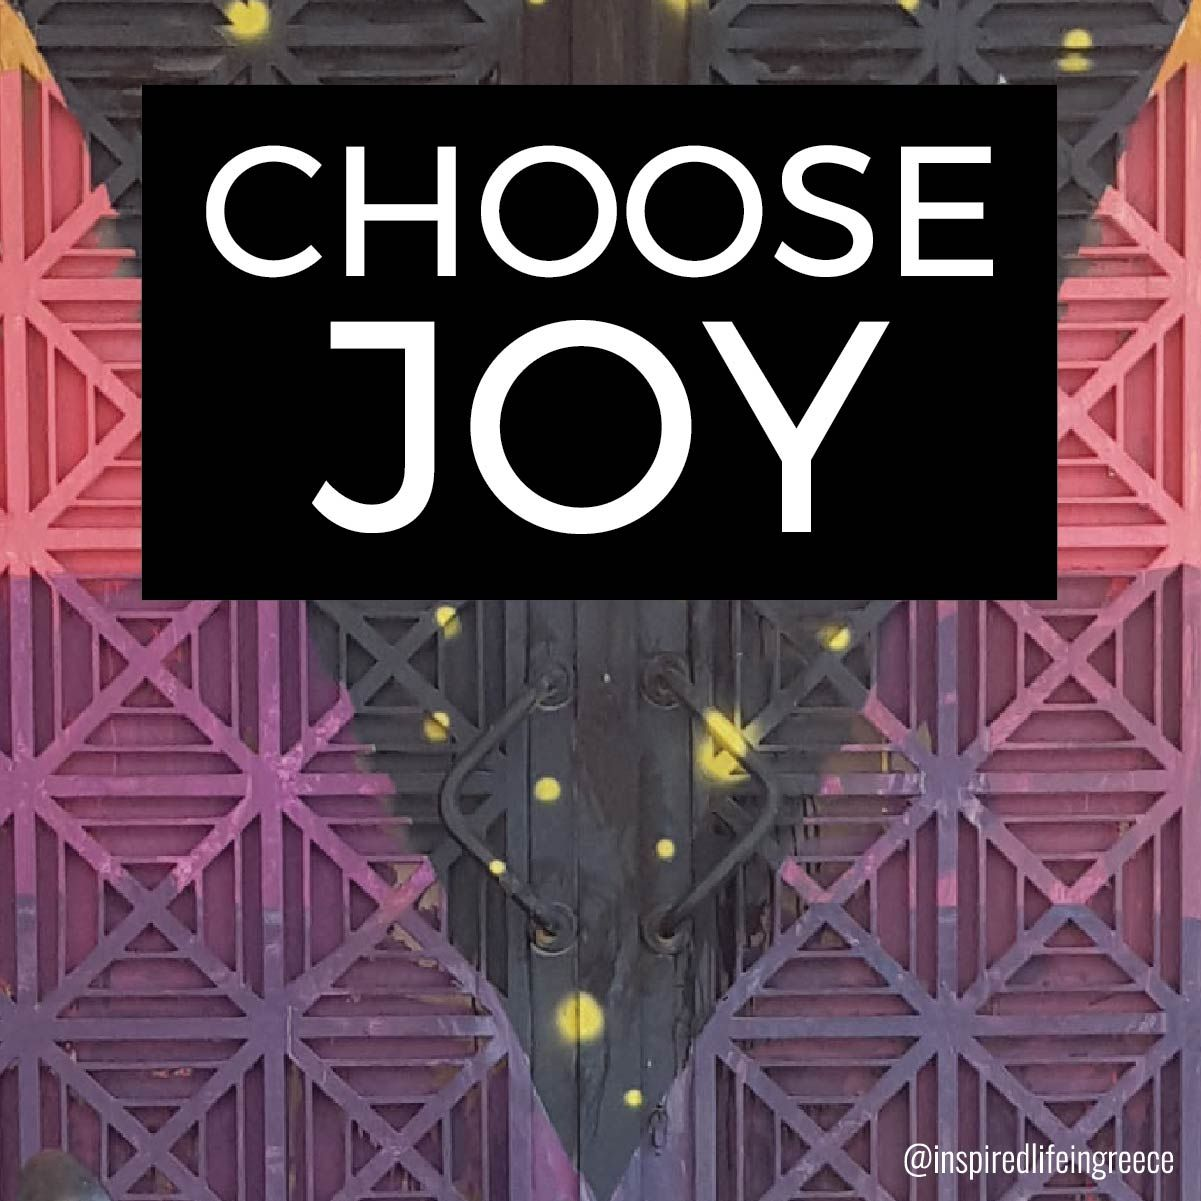 Worksheet On How To Move Closer To Joy And Live A